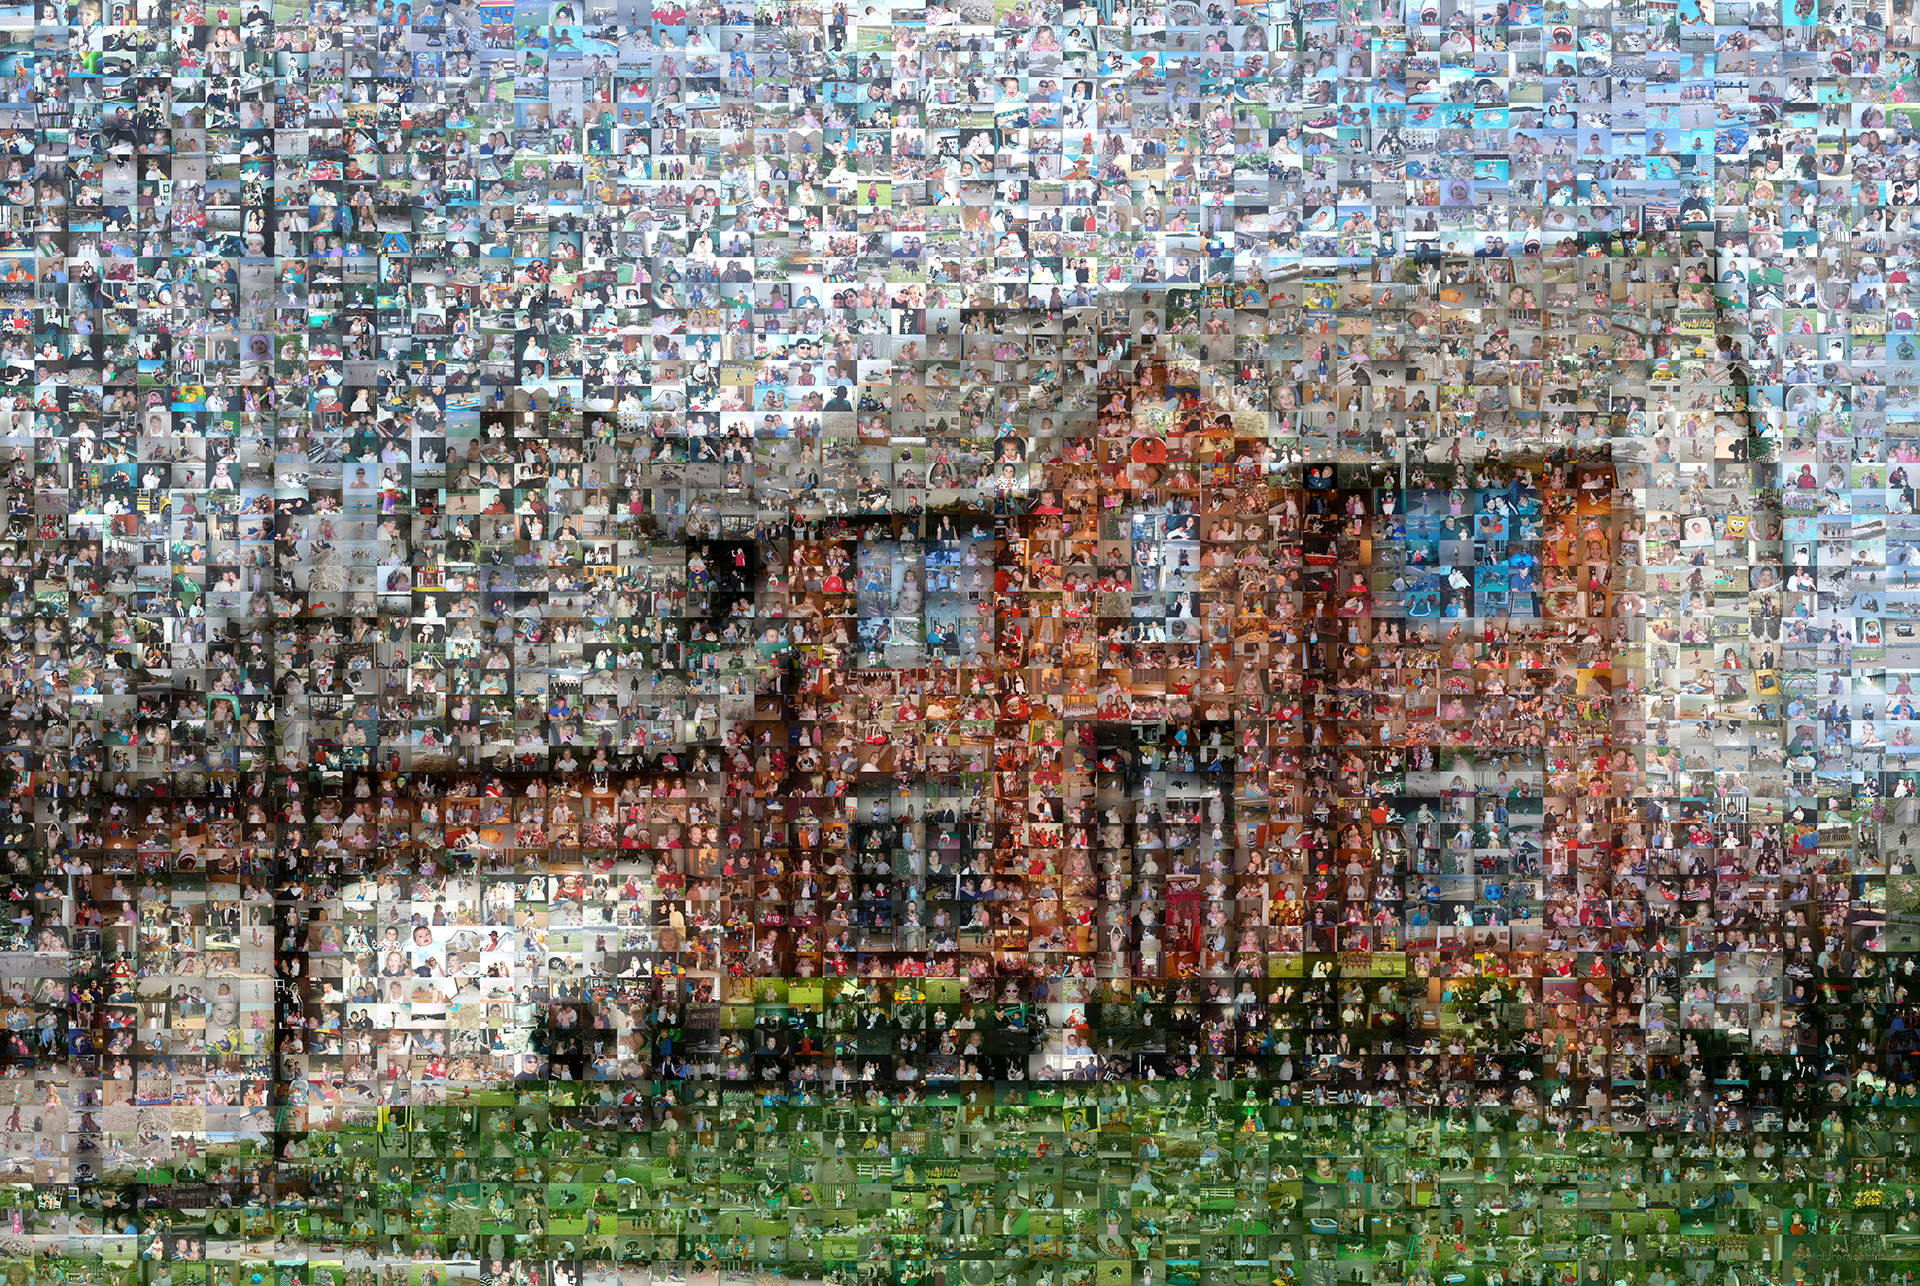 photo mosaic created using over 2300 family photos